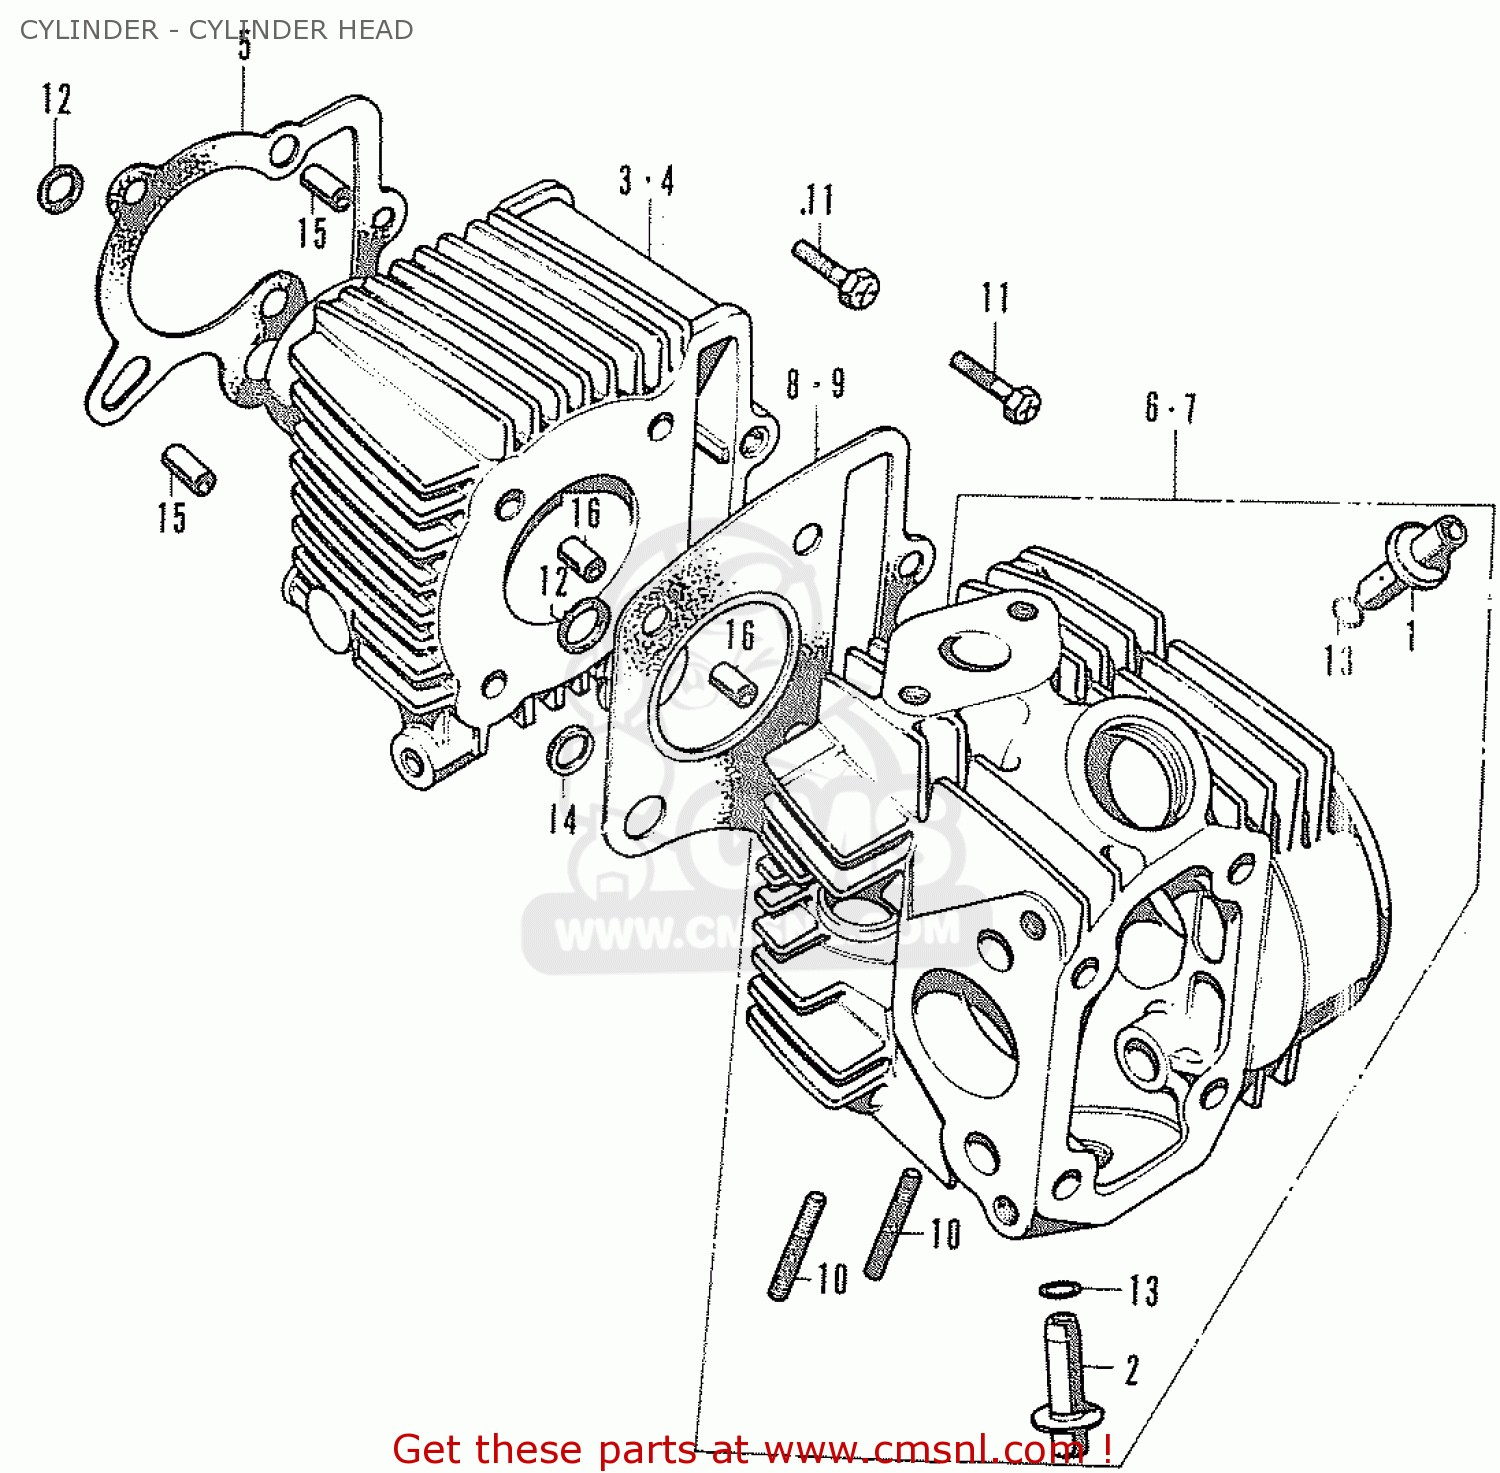 honda cd70 engine diagram engine valve timing diagram to